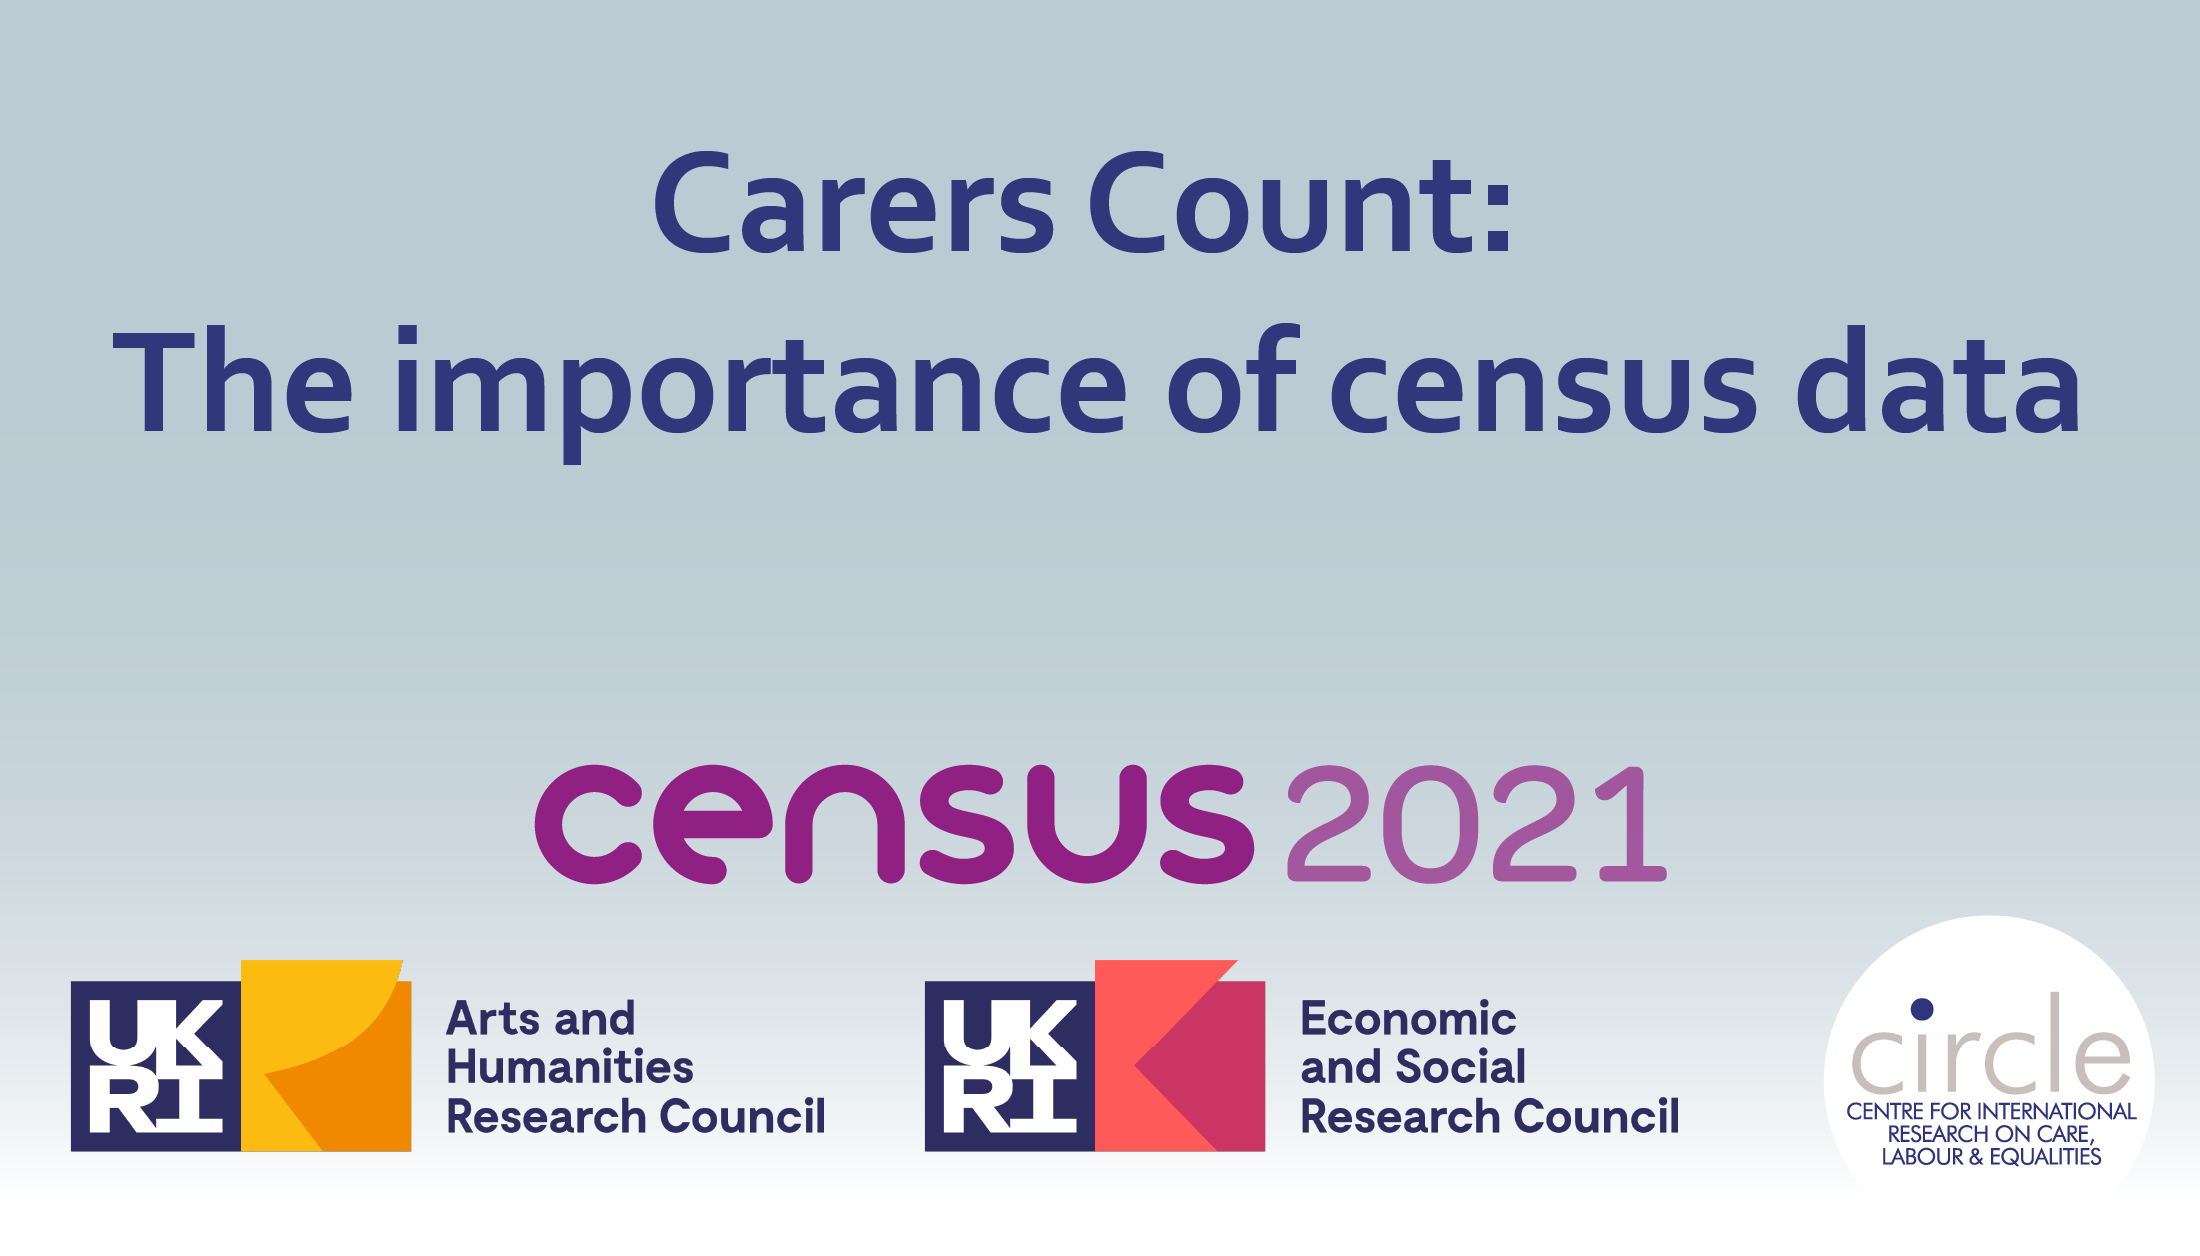 Carers Count: The importance of census data